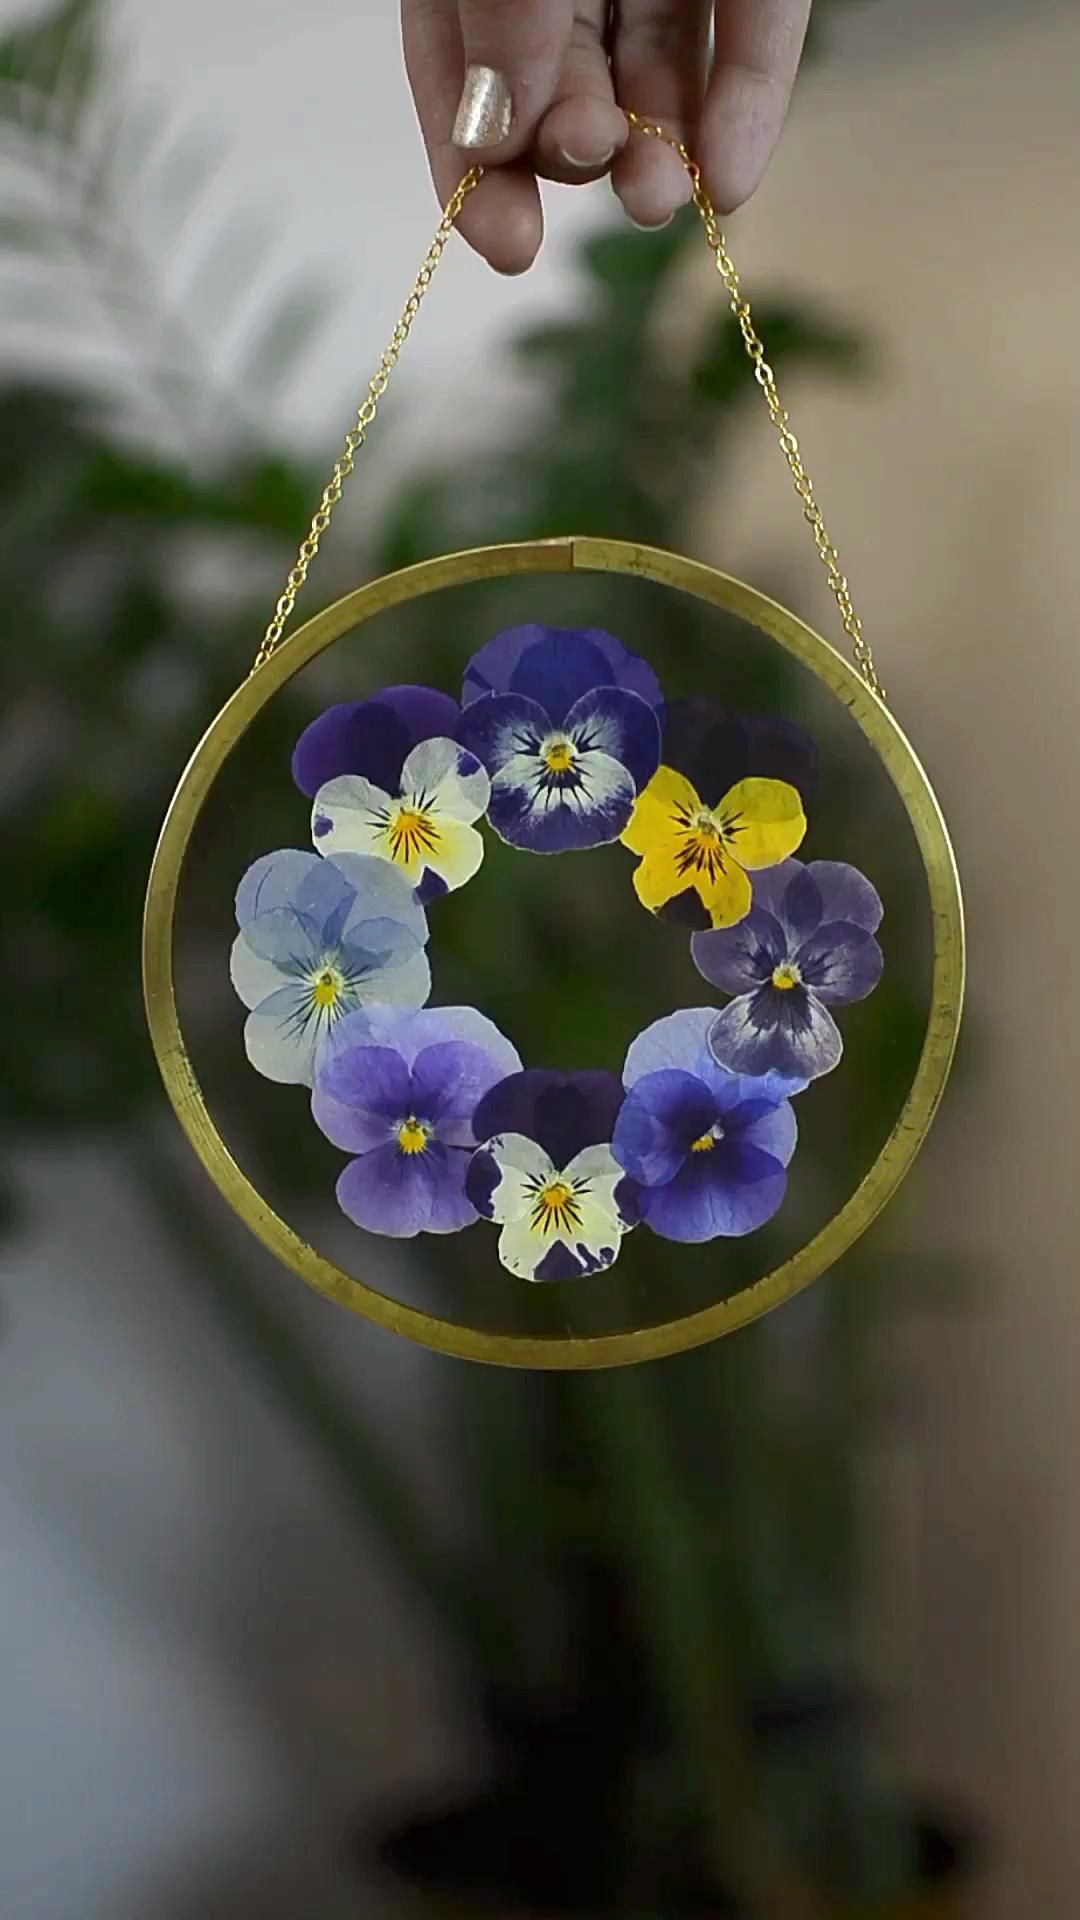 Pressed Flower Frame Framed Pressed Flowers Floating Frame Dried Flower Pansy Round Double Glass Frame Video Video In 2020 Dried And Pressed Flowers Pressed Flowers Pressed Flower Crafts